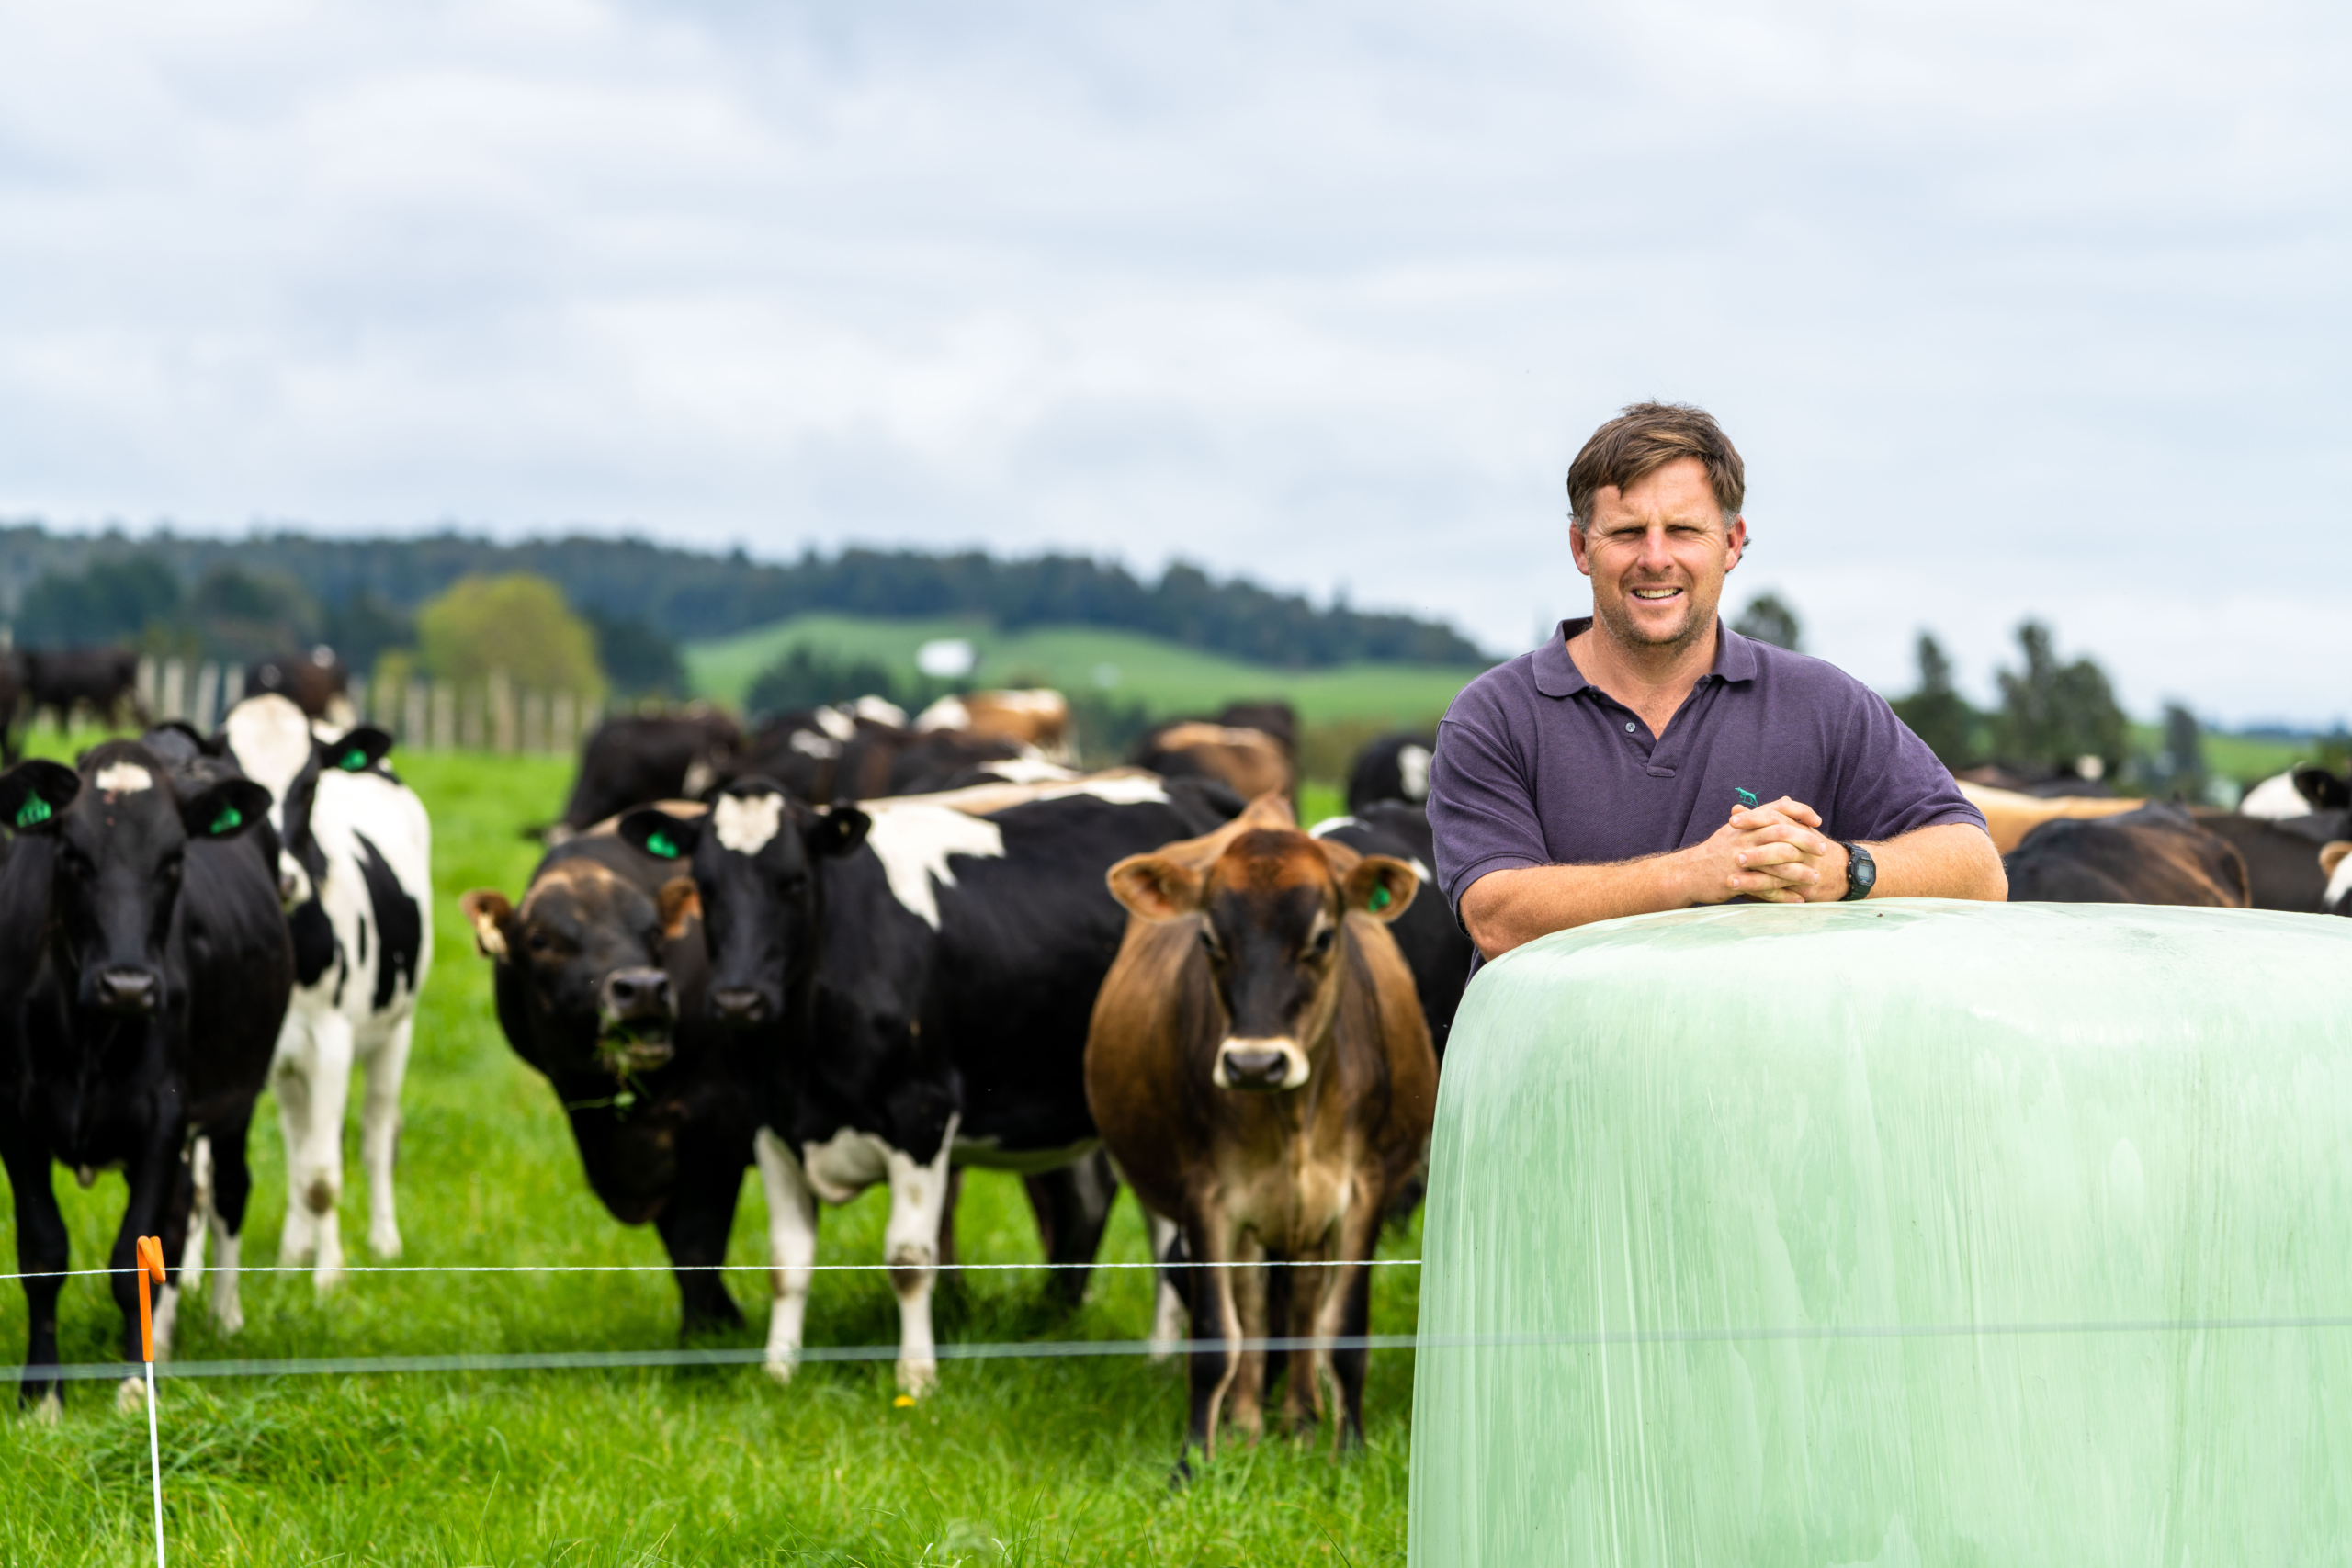 Phil and Megan Weir have designed a system to increase dairy grazing income by adding value